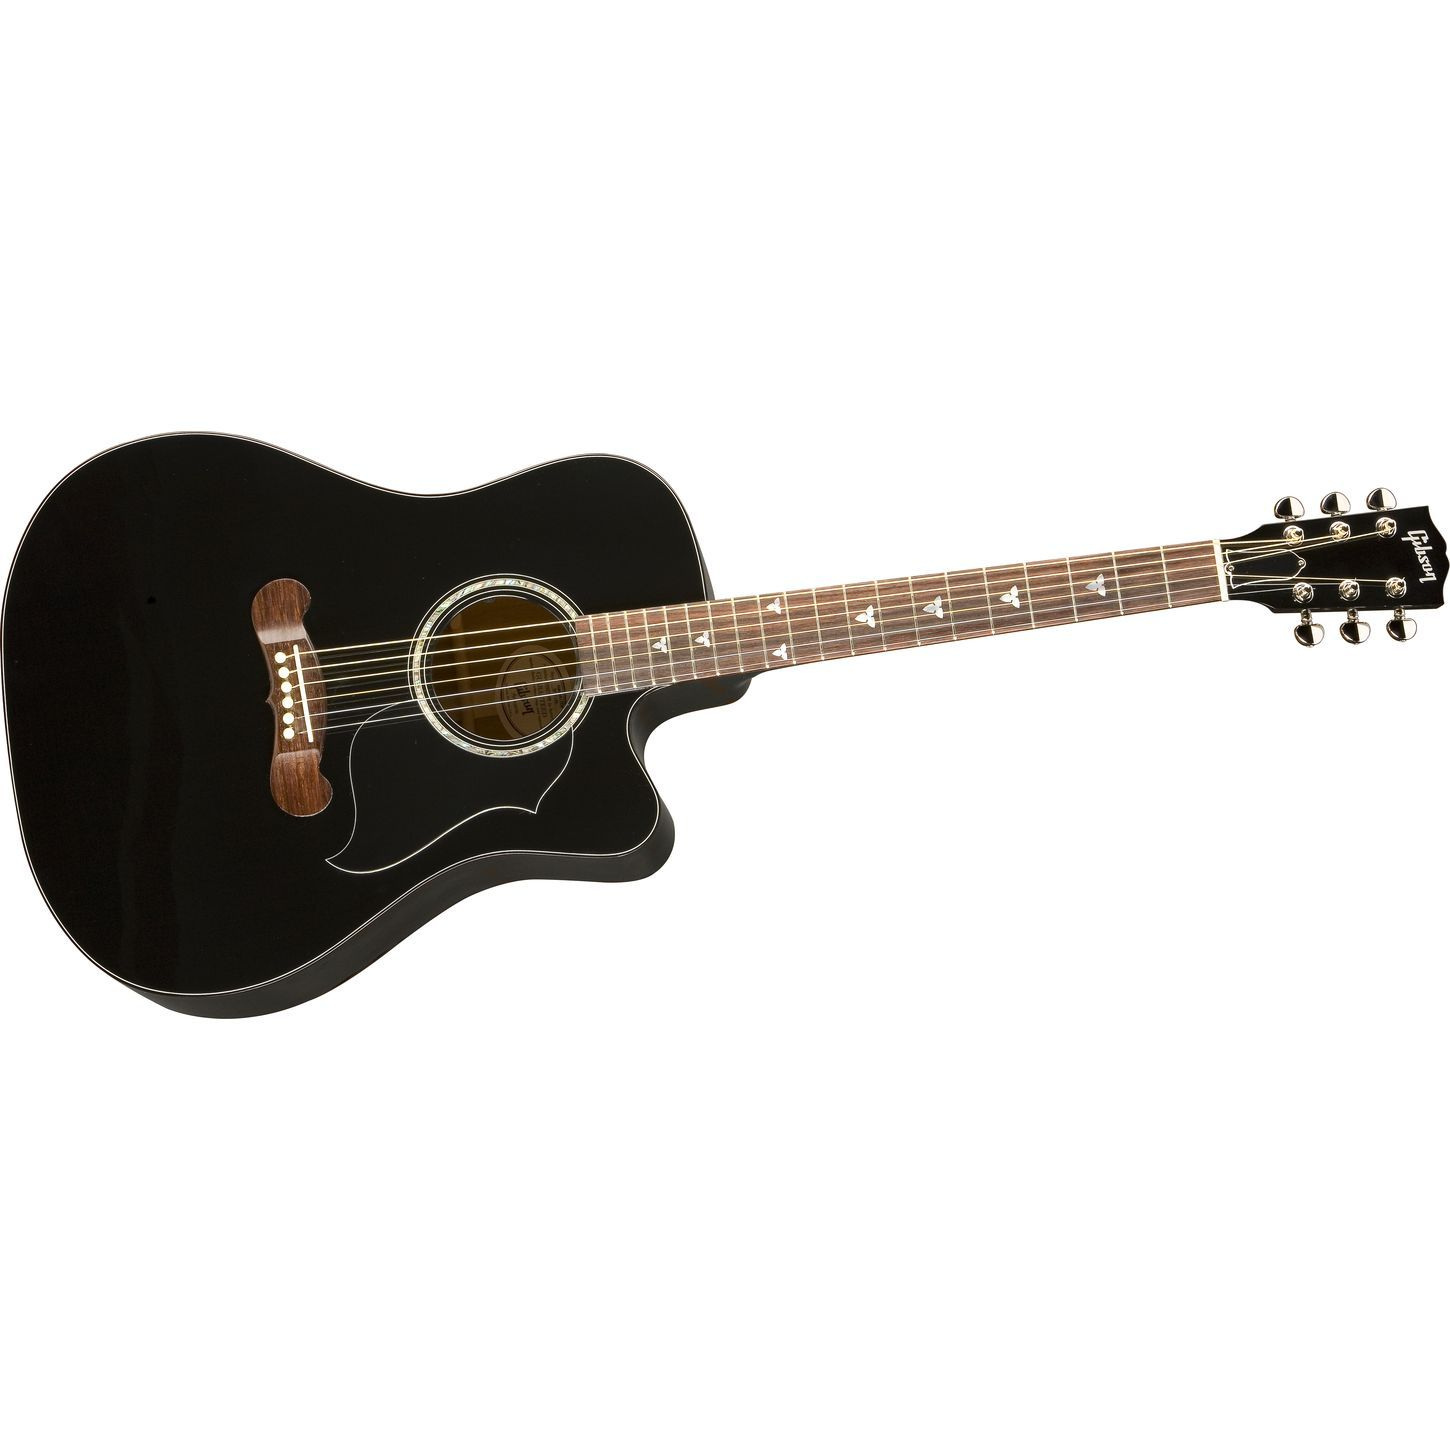 Dating gibson acoustic guitars